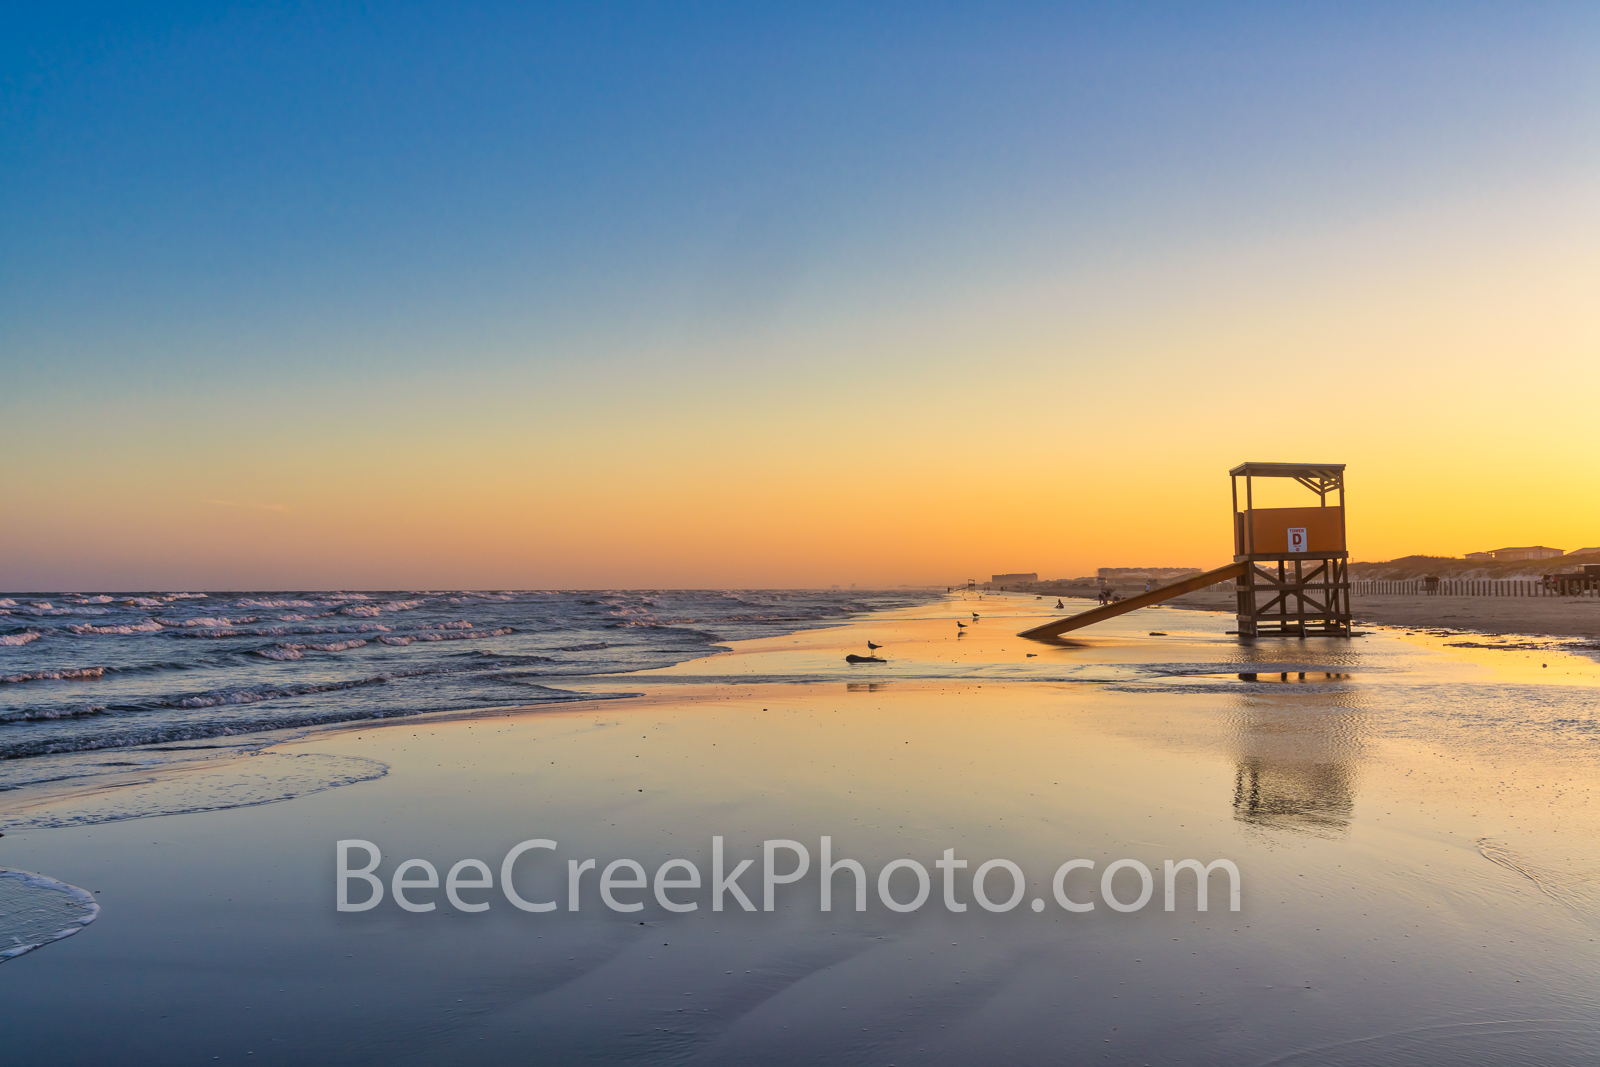 Tranquility at Dusk, Port Aransas Beach  - This was the scene at Port Aransas beach at dusk or the blue hour which was right...